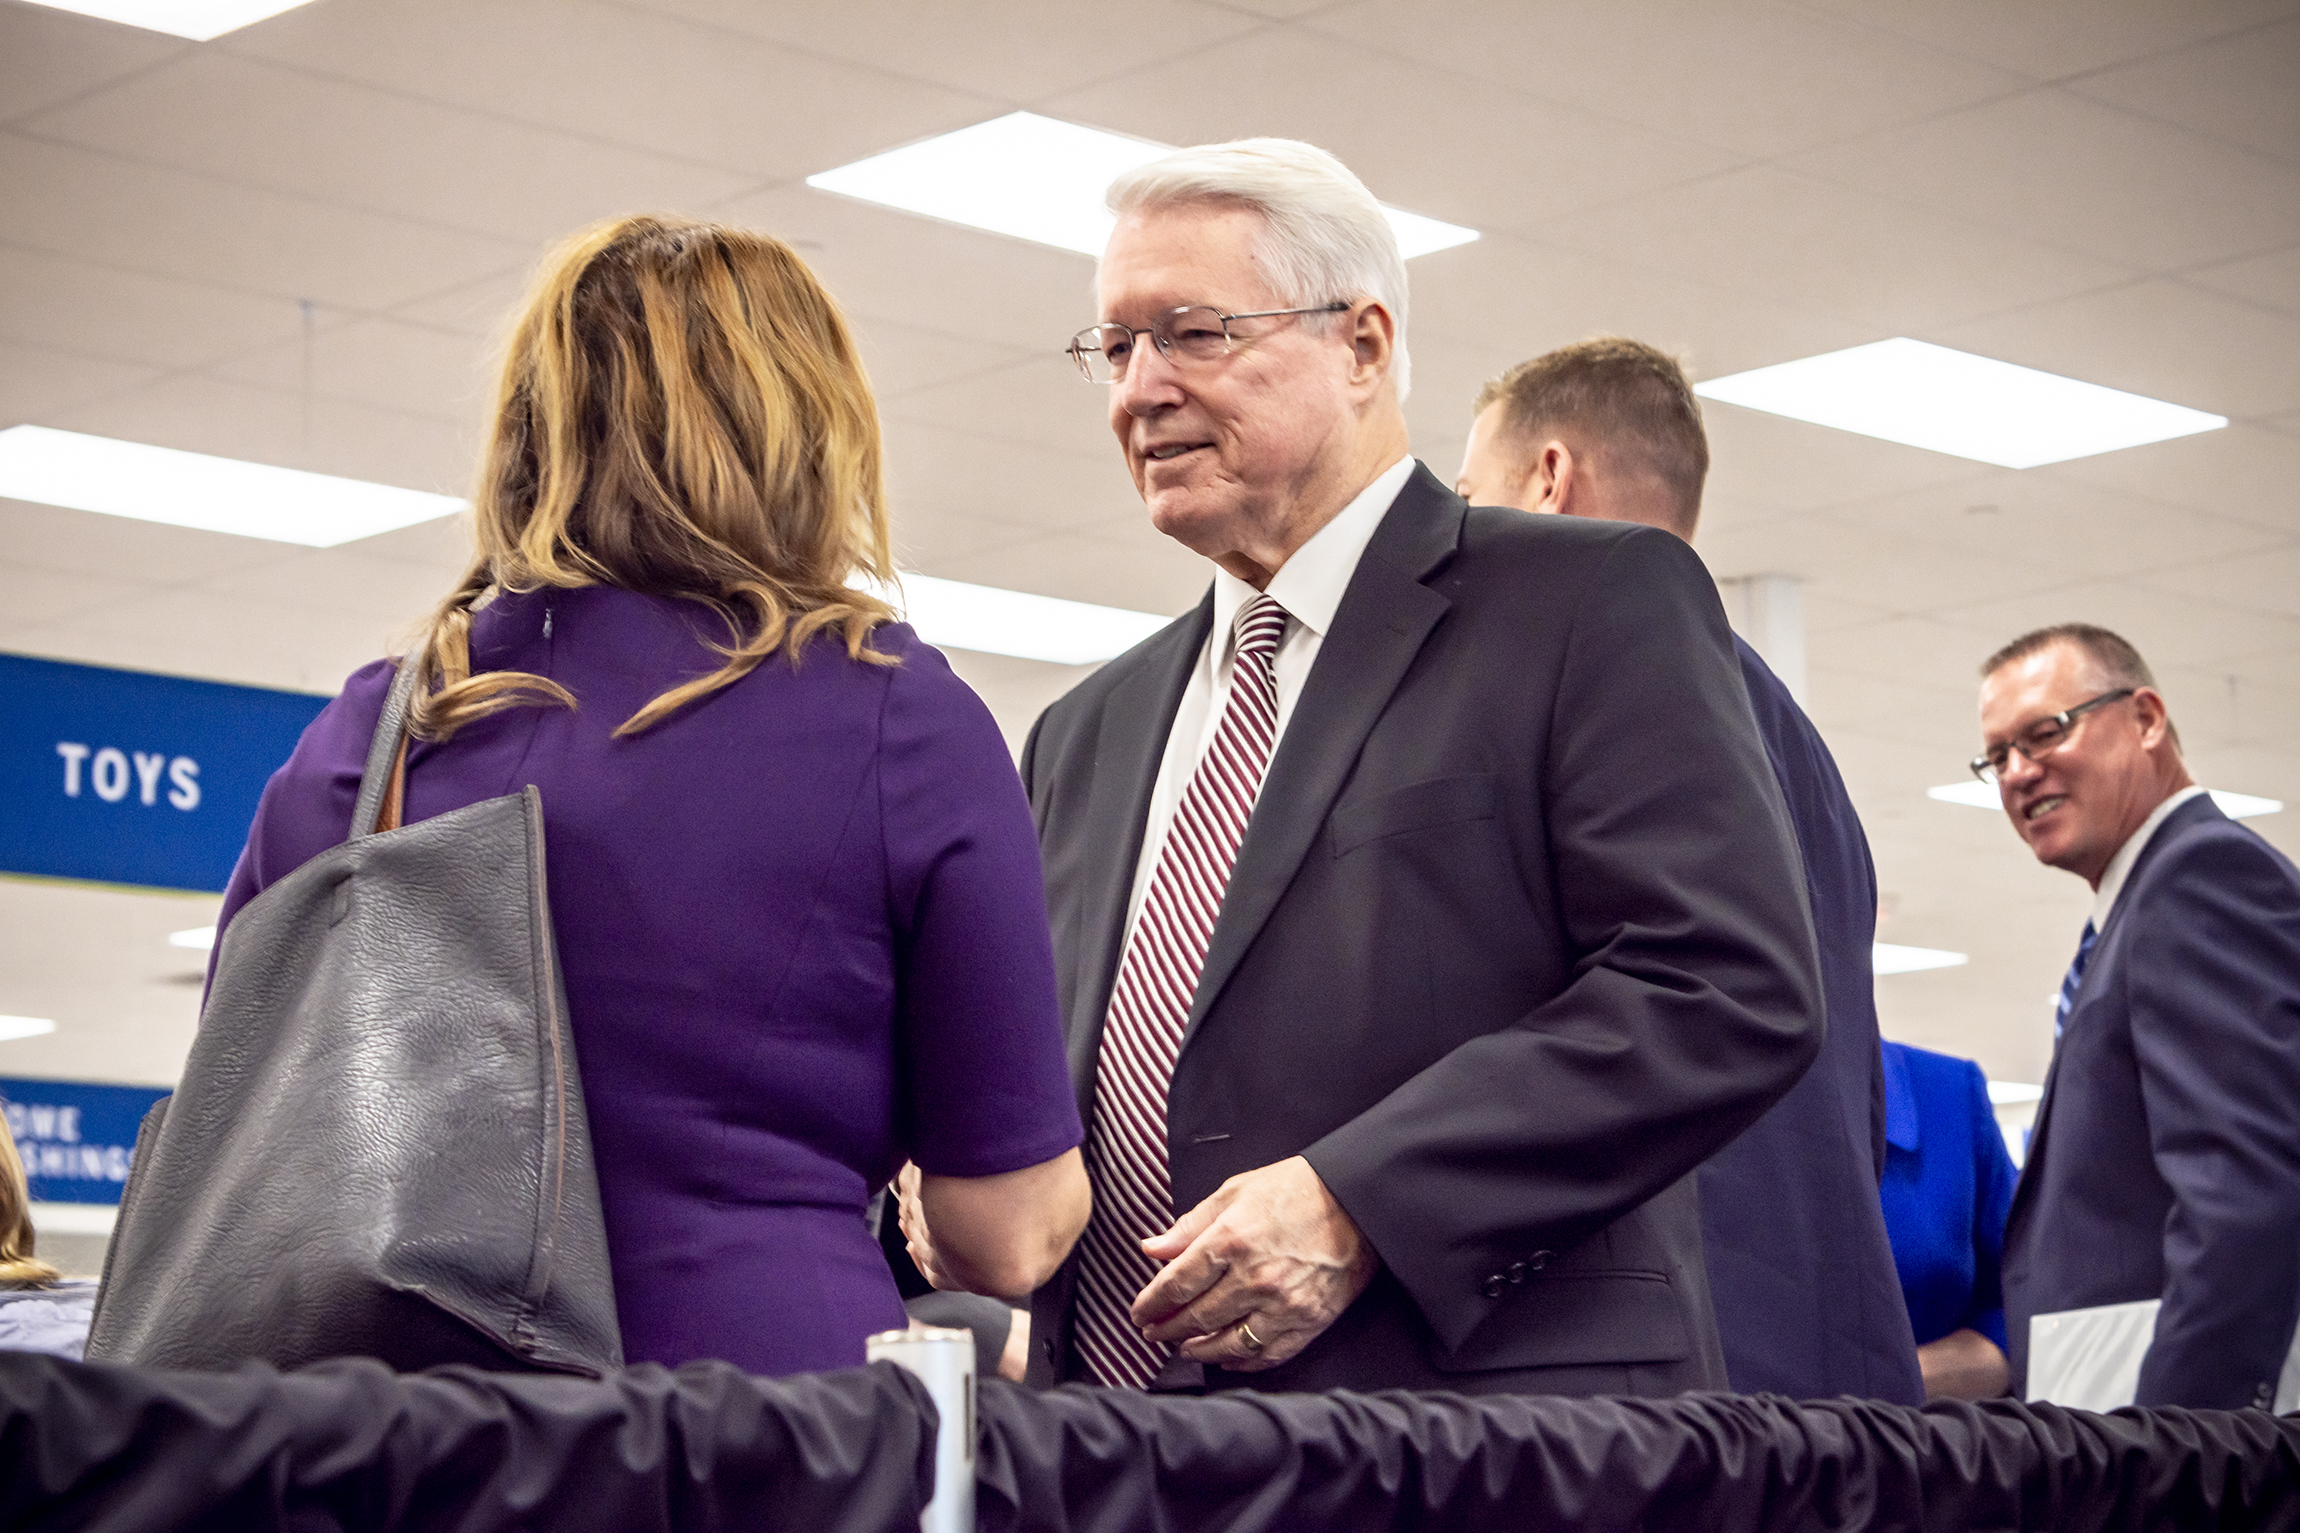 Bishop Dean M. Davies of the Presiding Bishopric of The Church of Jesus Christ of Latter-day Saints greets attendees of the dedication of a new Deseret Industries in Gilbert, Arizona, Oct. 20, 2018.